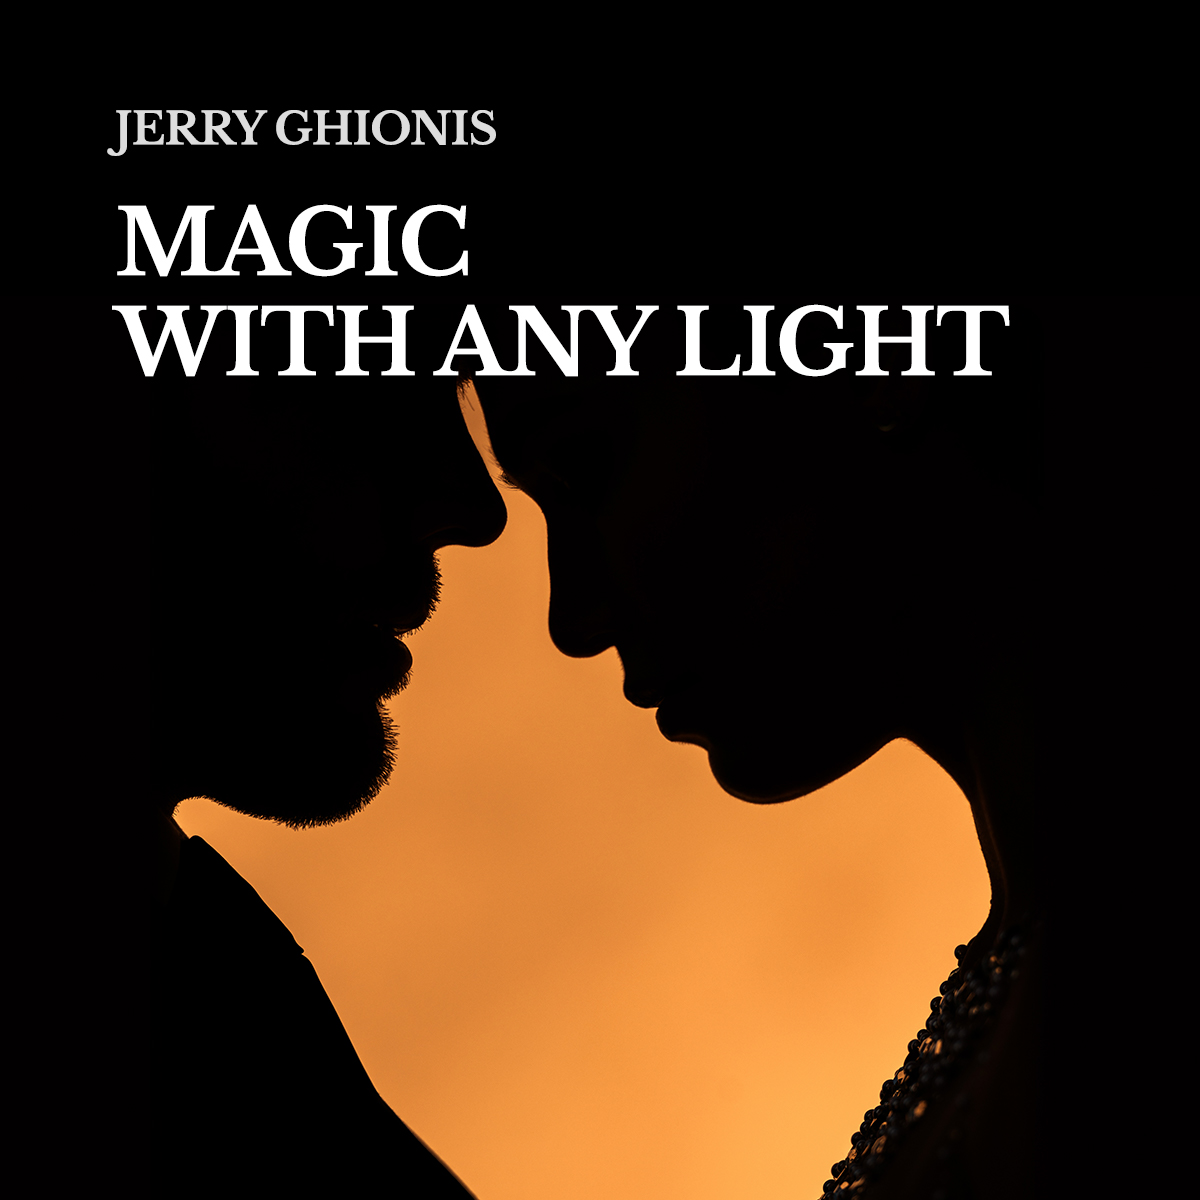 Jerry Ghionis Magic With Any Light - 1